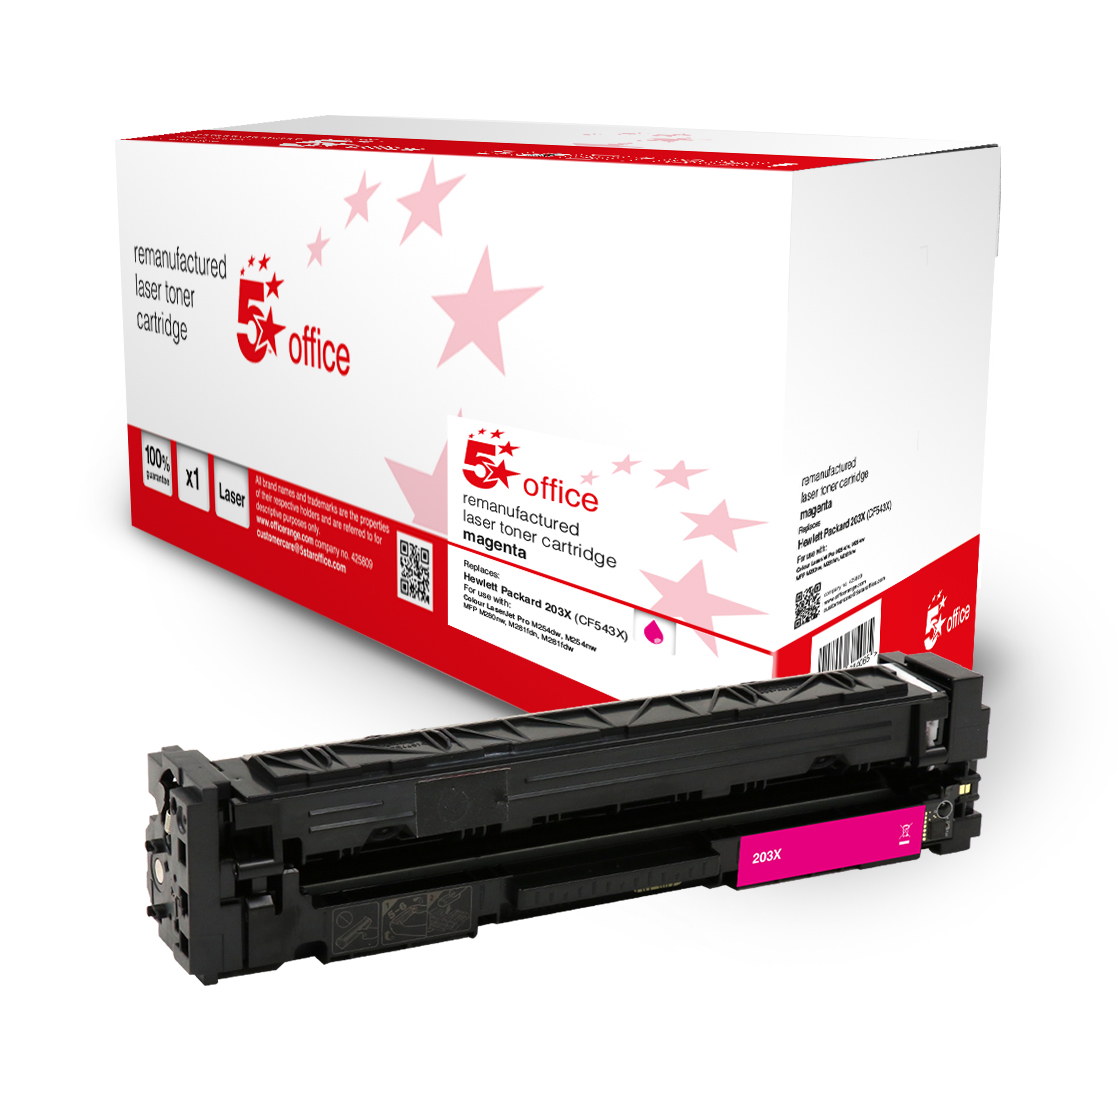 Laser Toner Cartridges 5 Star Office Remanufactured Toner Cartridge Page Life Magenta 2500pp HP 203X CF543X Alternative